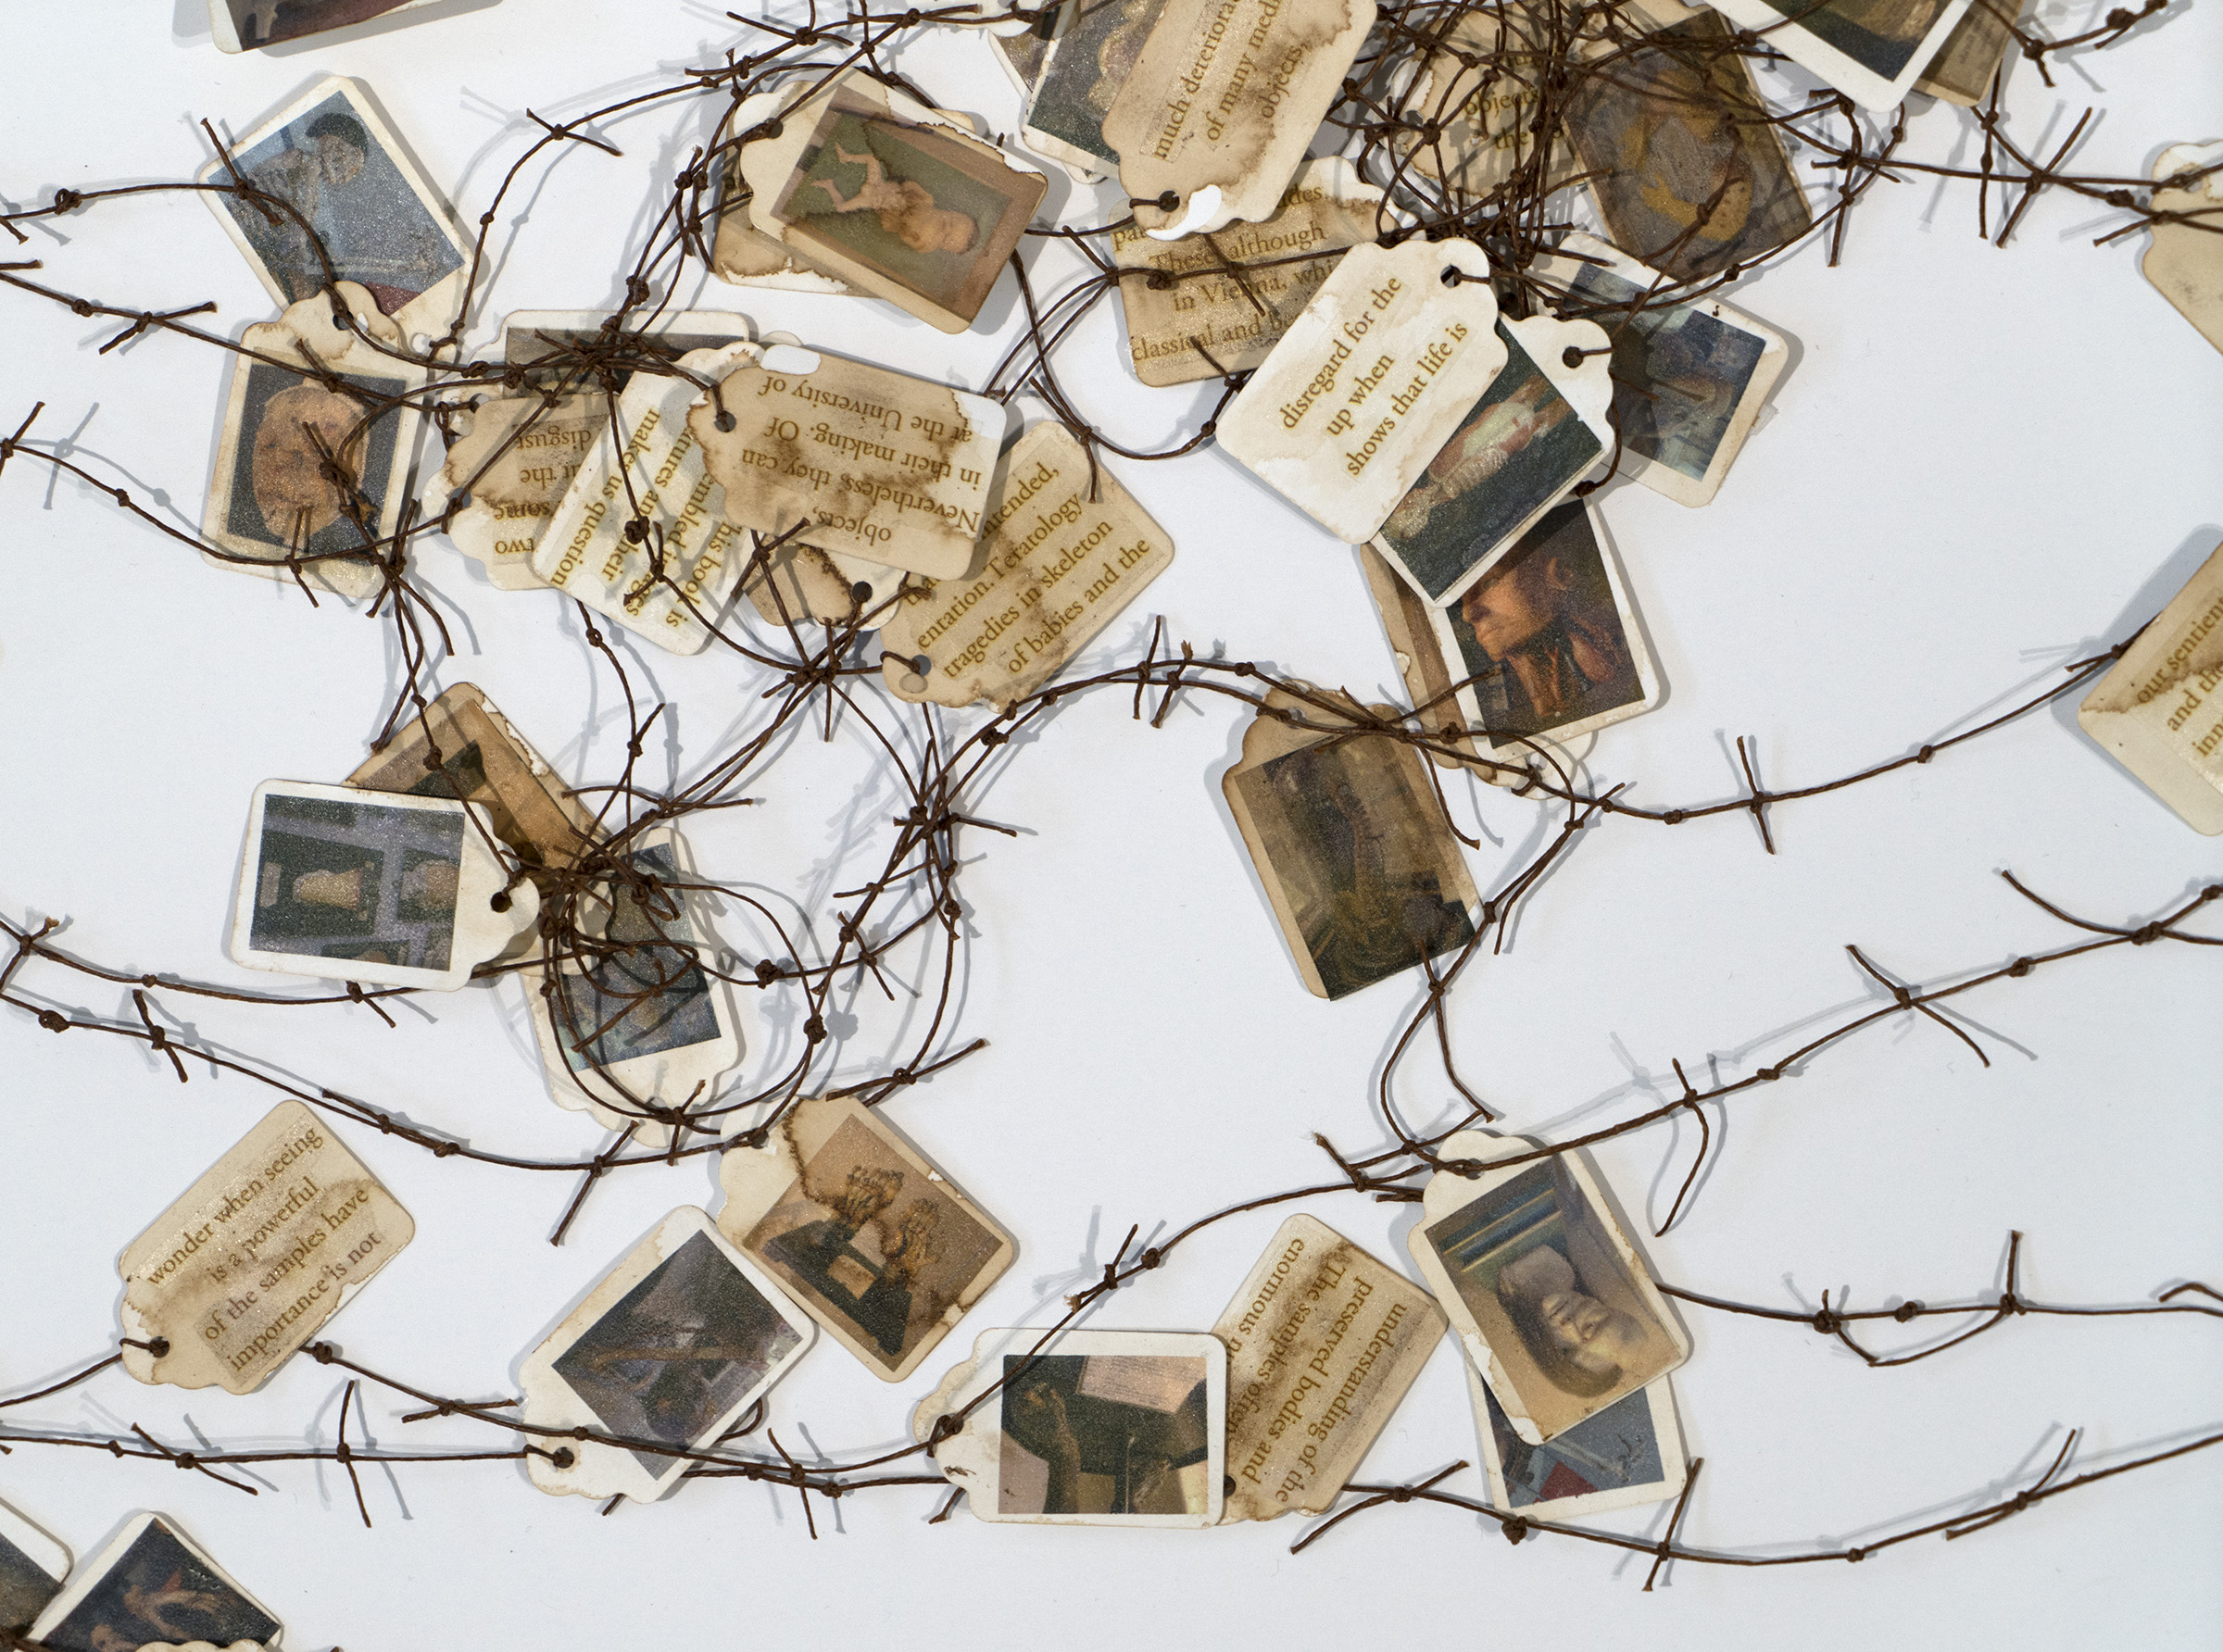 Several hang tags with images of people and text connected by reddish brown string tied together